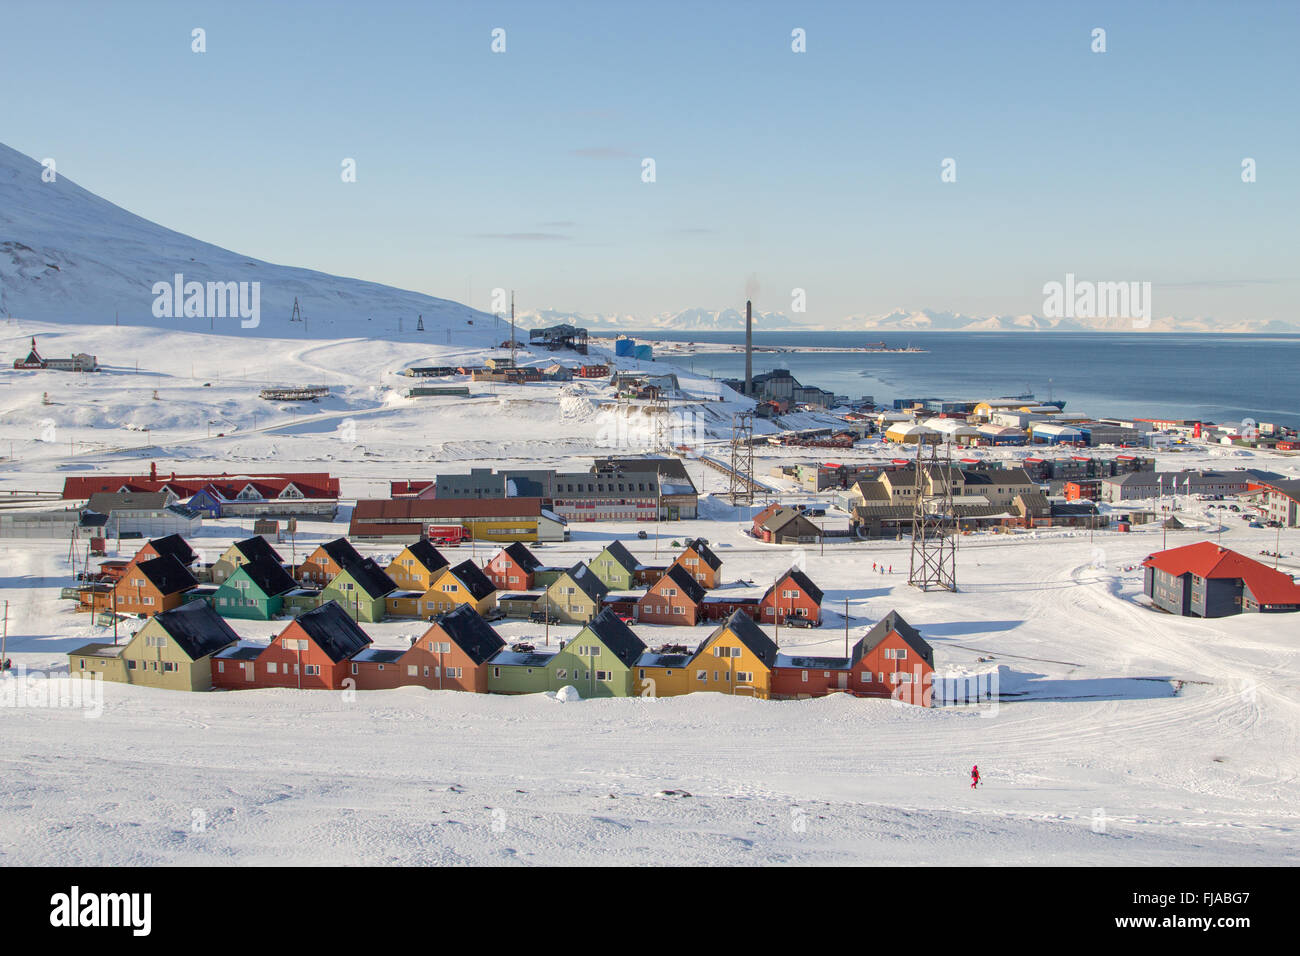 A city details of Longyearbyen - the most Northern settlement in the world. Spitsbergen (Svalbard). Norway. - Stock Image